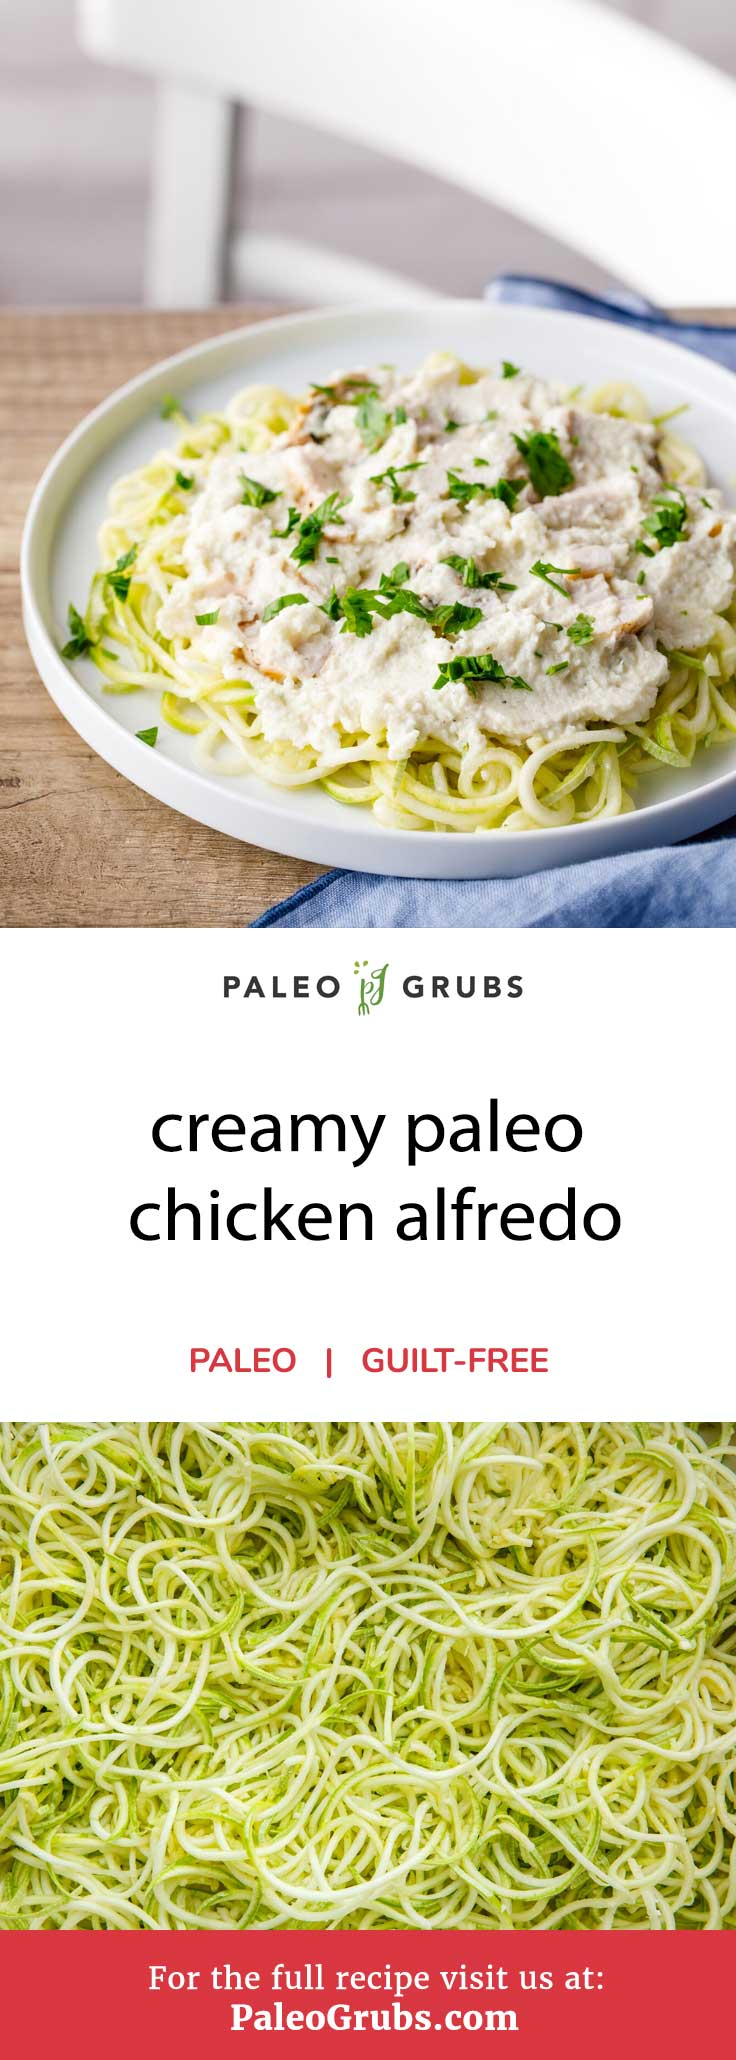 A chicken alfredo plate from a restaurant like Olive Garden is absolutely loaded with calories: 1440 calories to be exact with more than half of them coming from fat. It's also incredibly high in carbs, so there is no doubt in my mind that paleo dieters are better off with this low-carb, all-natural alternative. It is proof that you can still enjoy a delicious chicken alfredo without violating a gazillion paleo guidelines. Bonus points: this recipe is low in calories, so you can eat a good amount of it without spending too many of your calories.